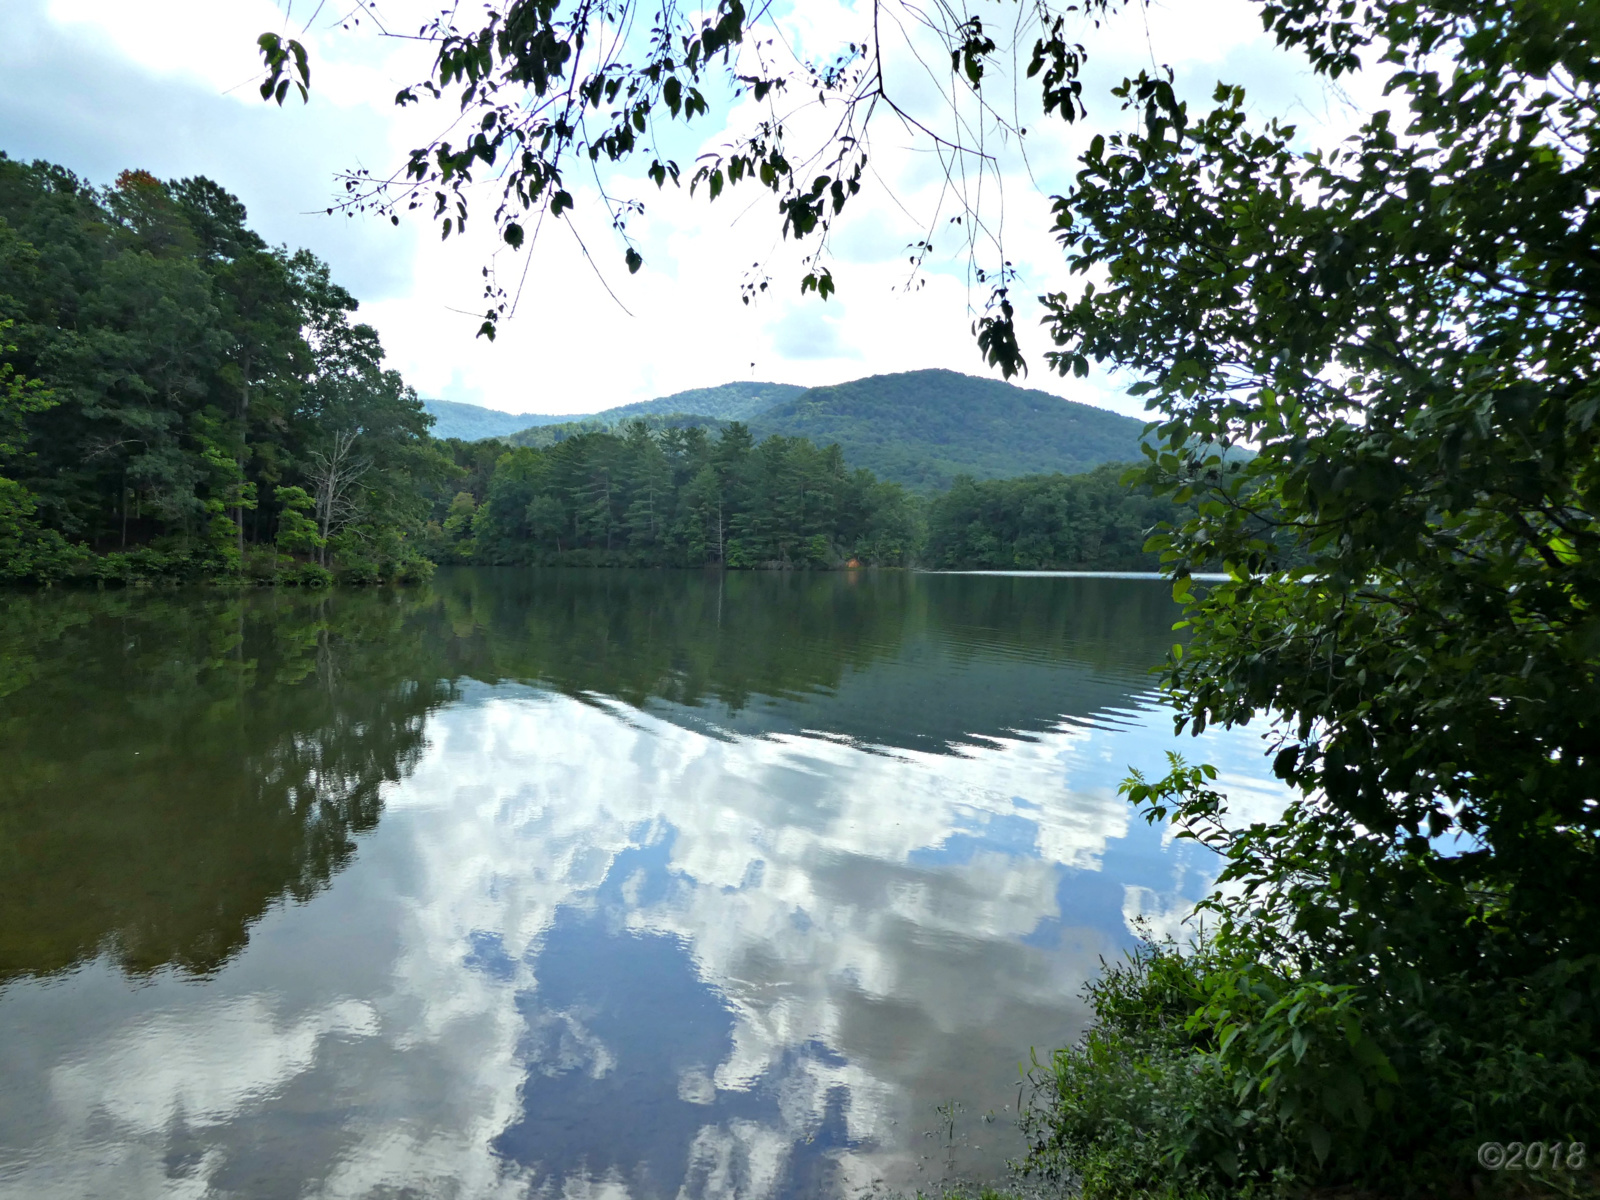 August 5, 2018 - View of Lake Tamarack from the spillway